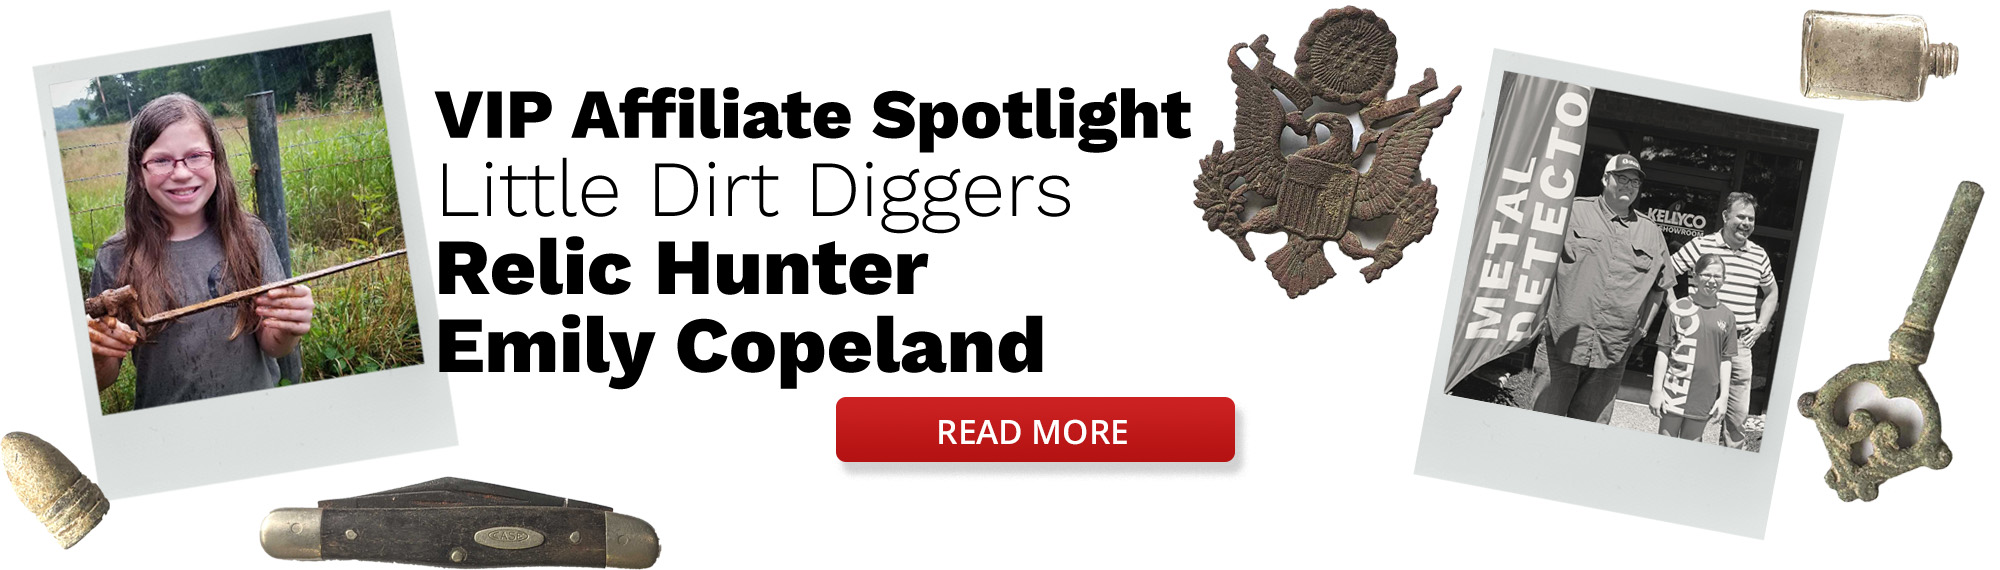 Little Dirt Diggers Affiliate Spotlight Banner with Relics Around Edges and Two Images Showing Emily Copeland